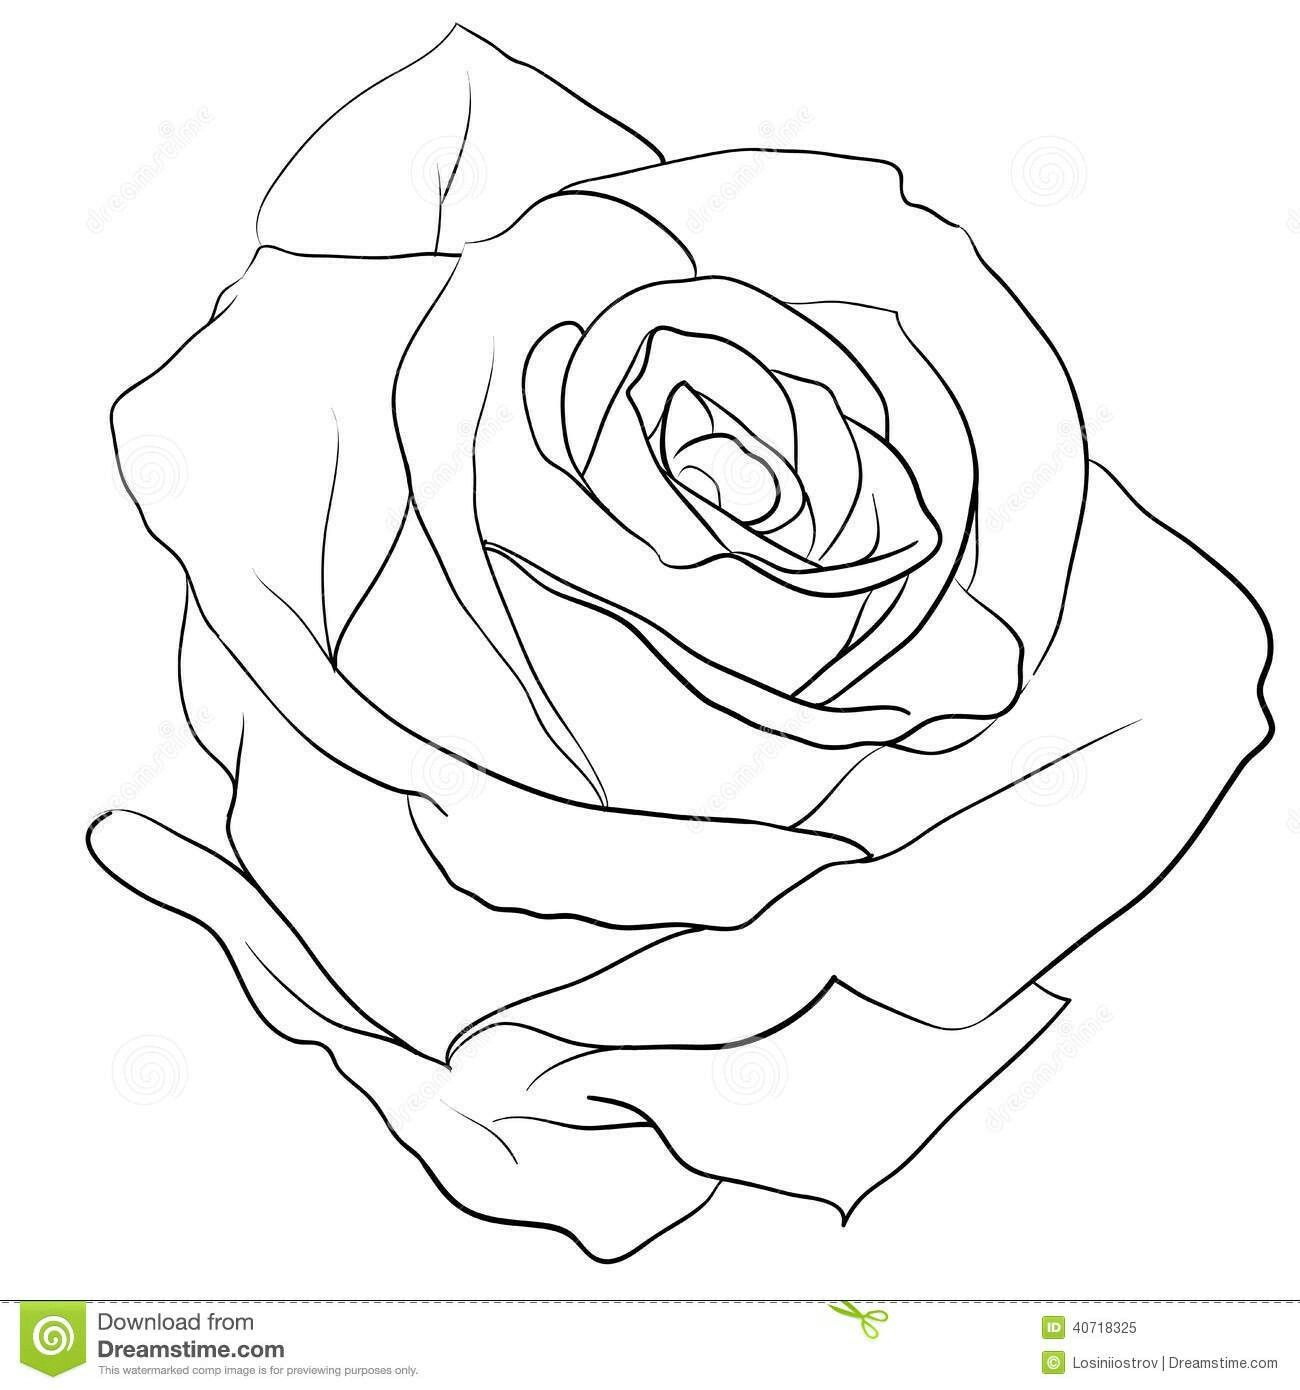 Pin By Rikard Wallin On Roses Rose Outline Rose Drawing Roses Drawing